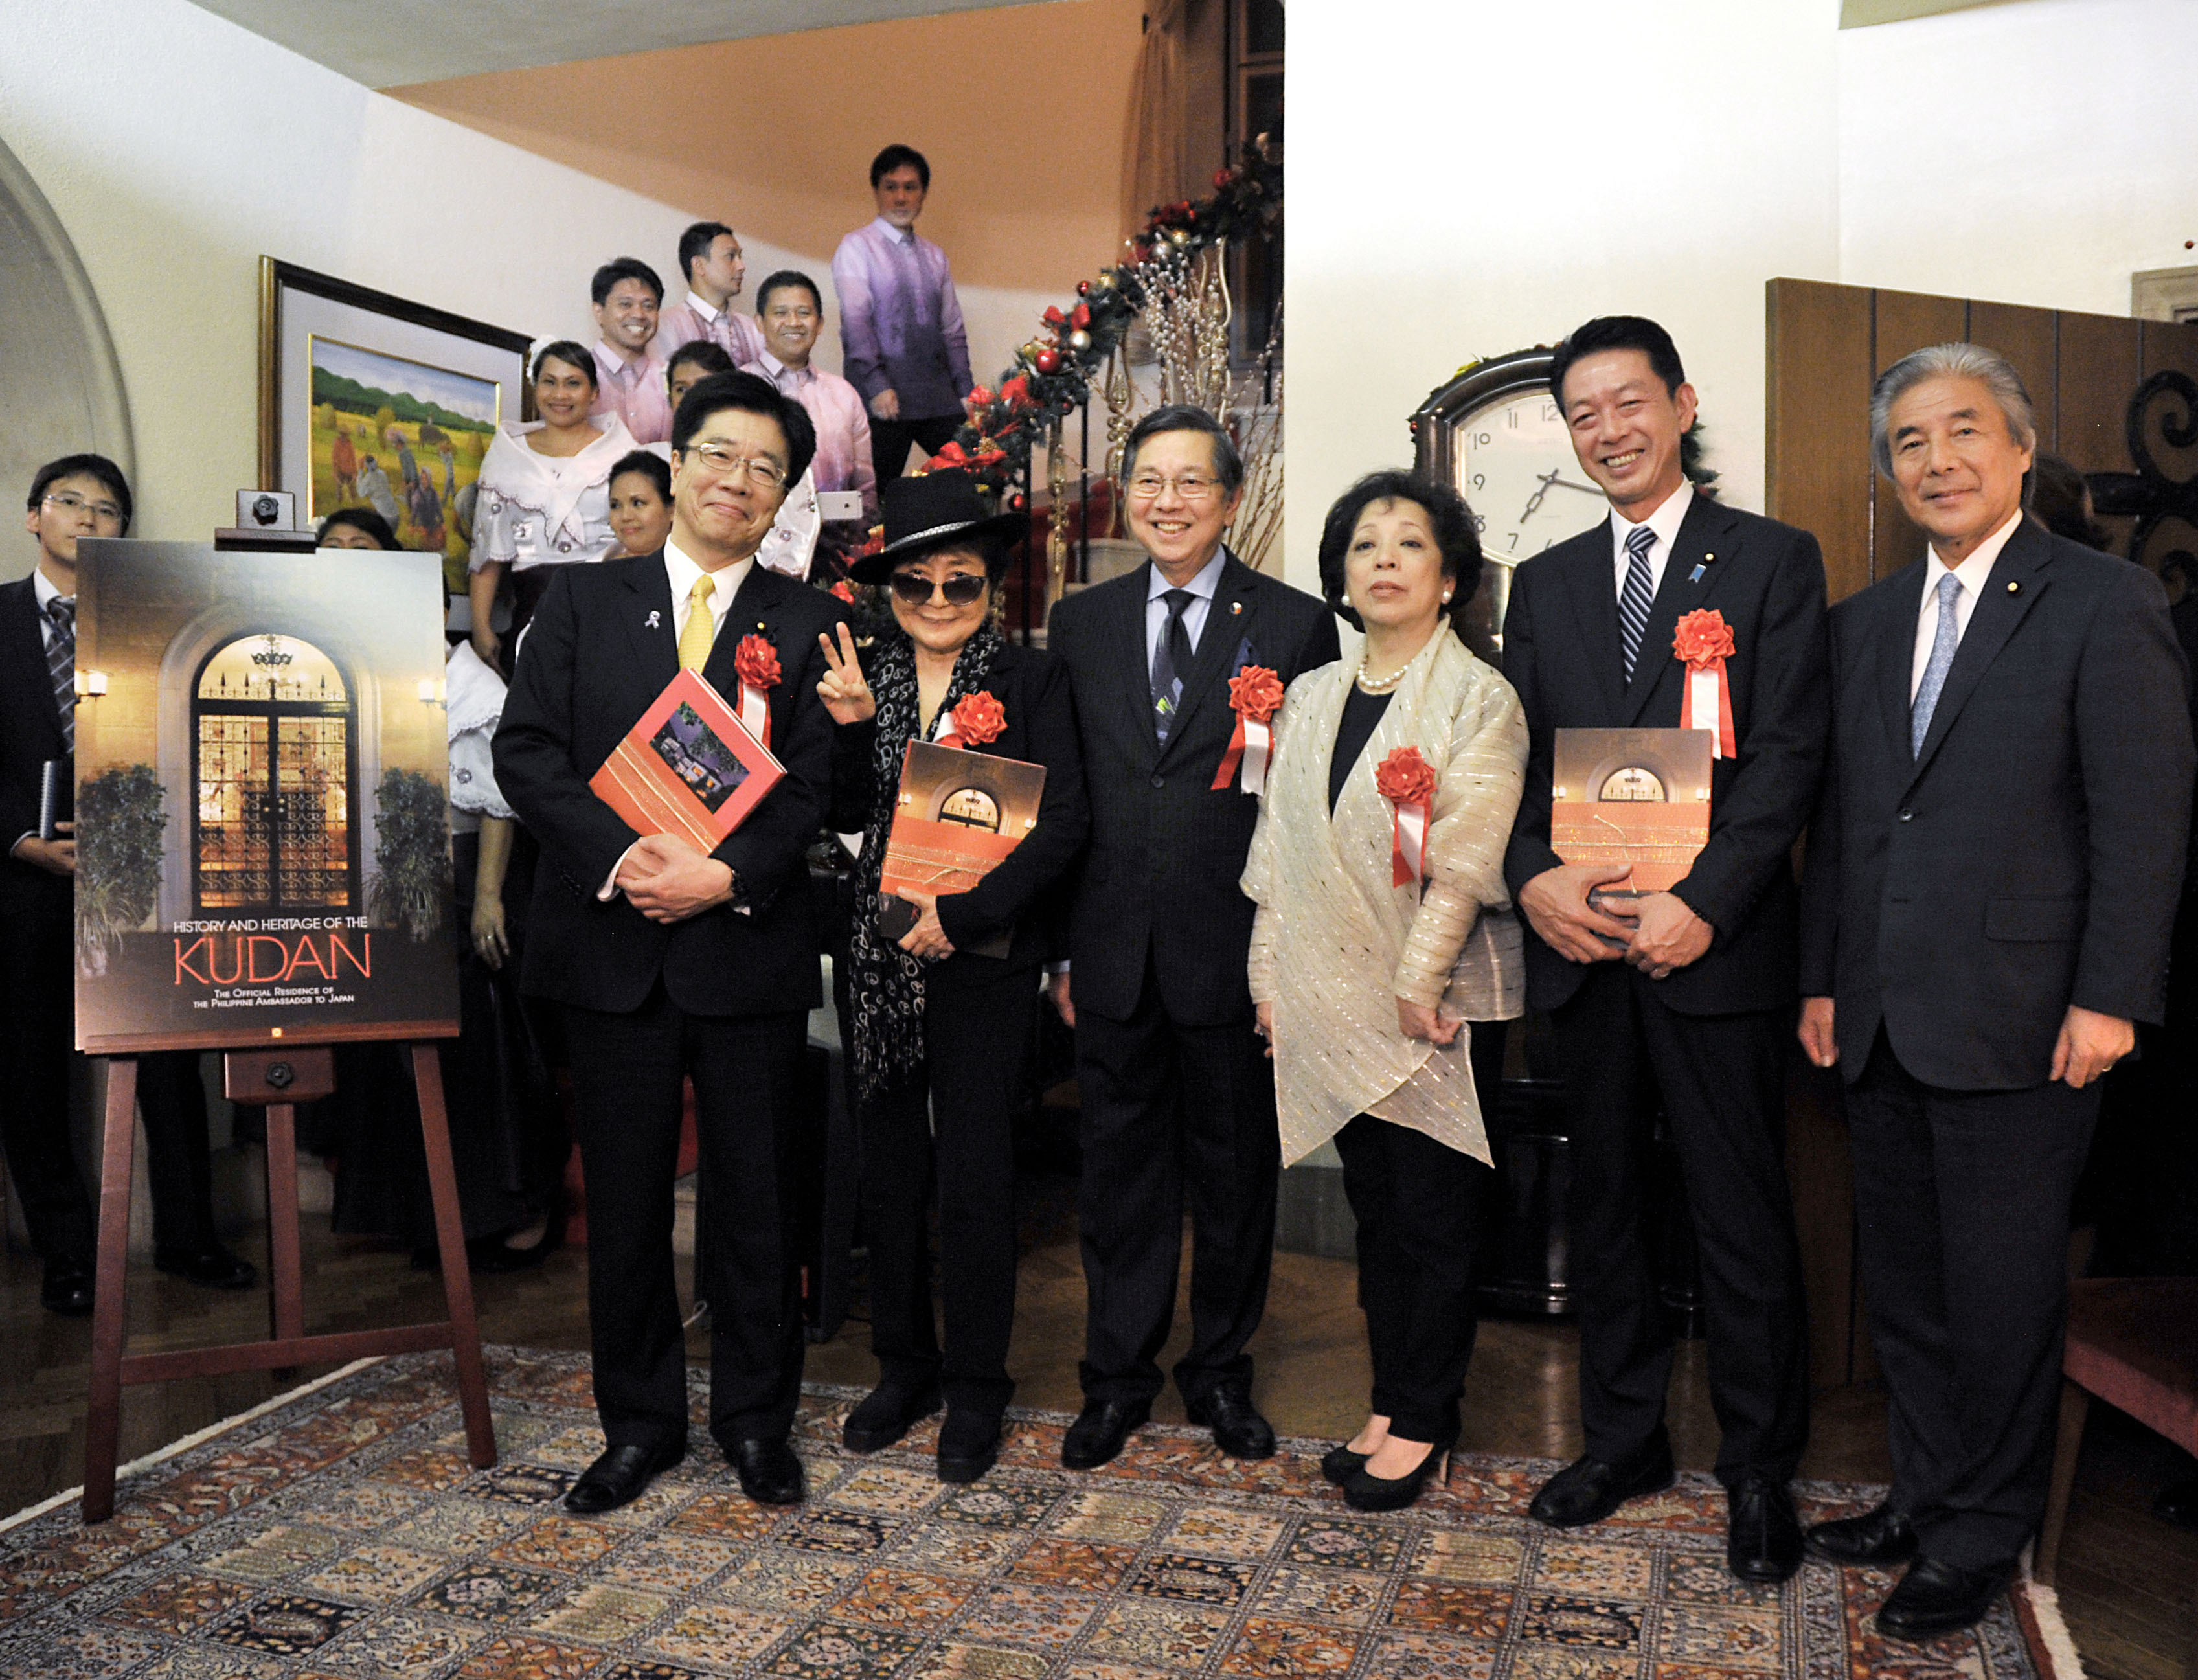 (From left), Katsunobu Kato, the state minister in charge of building a society in which all 100 million people can play an active role; Yoko Ono; Ambassador Lopez; the ambassador's wife Maria Teresa Lopez; State Minister for Foreign Affairs Yoji Muto; and former Foreign Minister Hirofumi Nakasone. | YOSHIAKI MIURA